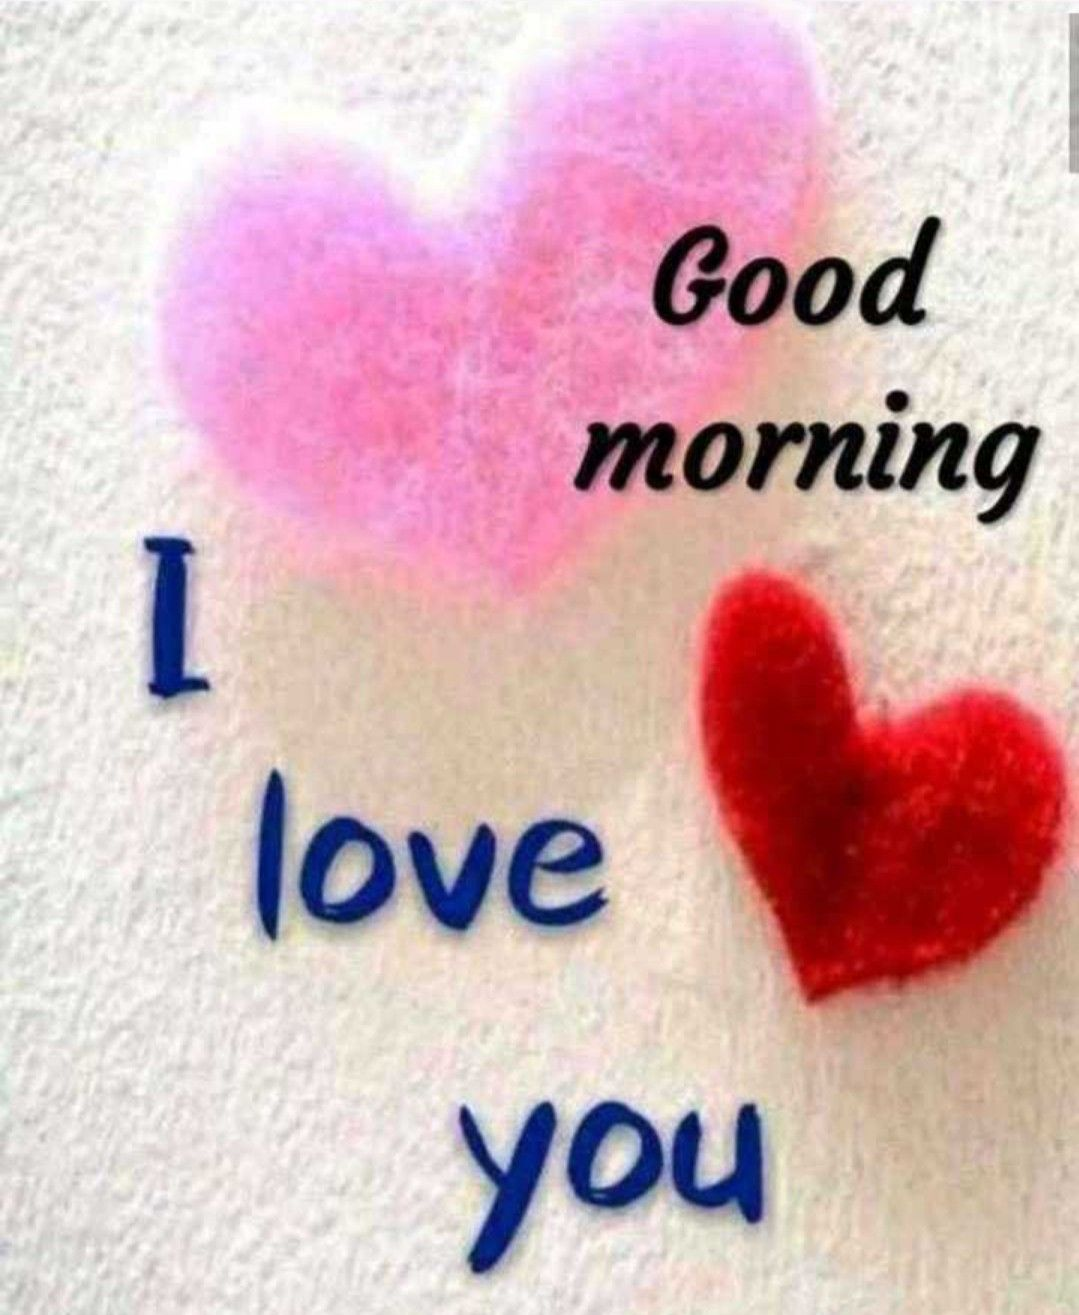 Pin By Connie0329 Shafer On Pictures Good Morning Love Good Morning Love Messages Good Morning Cards